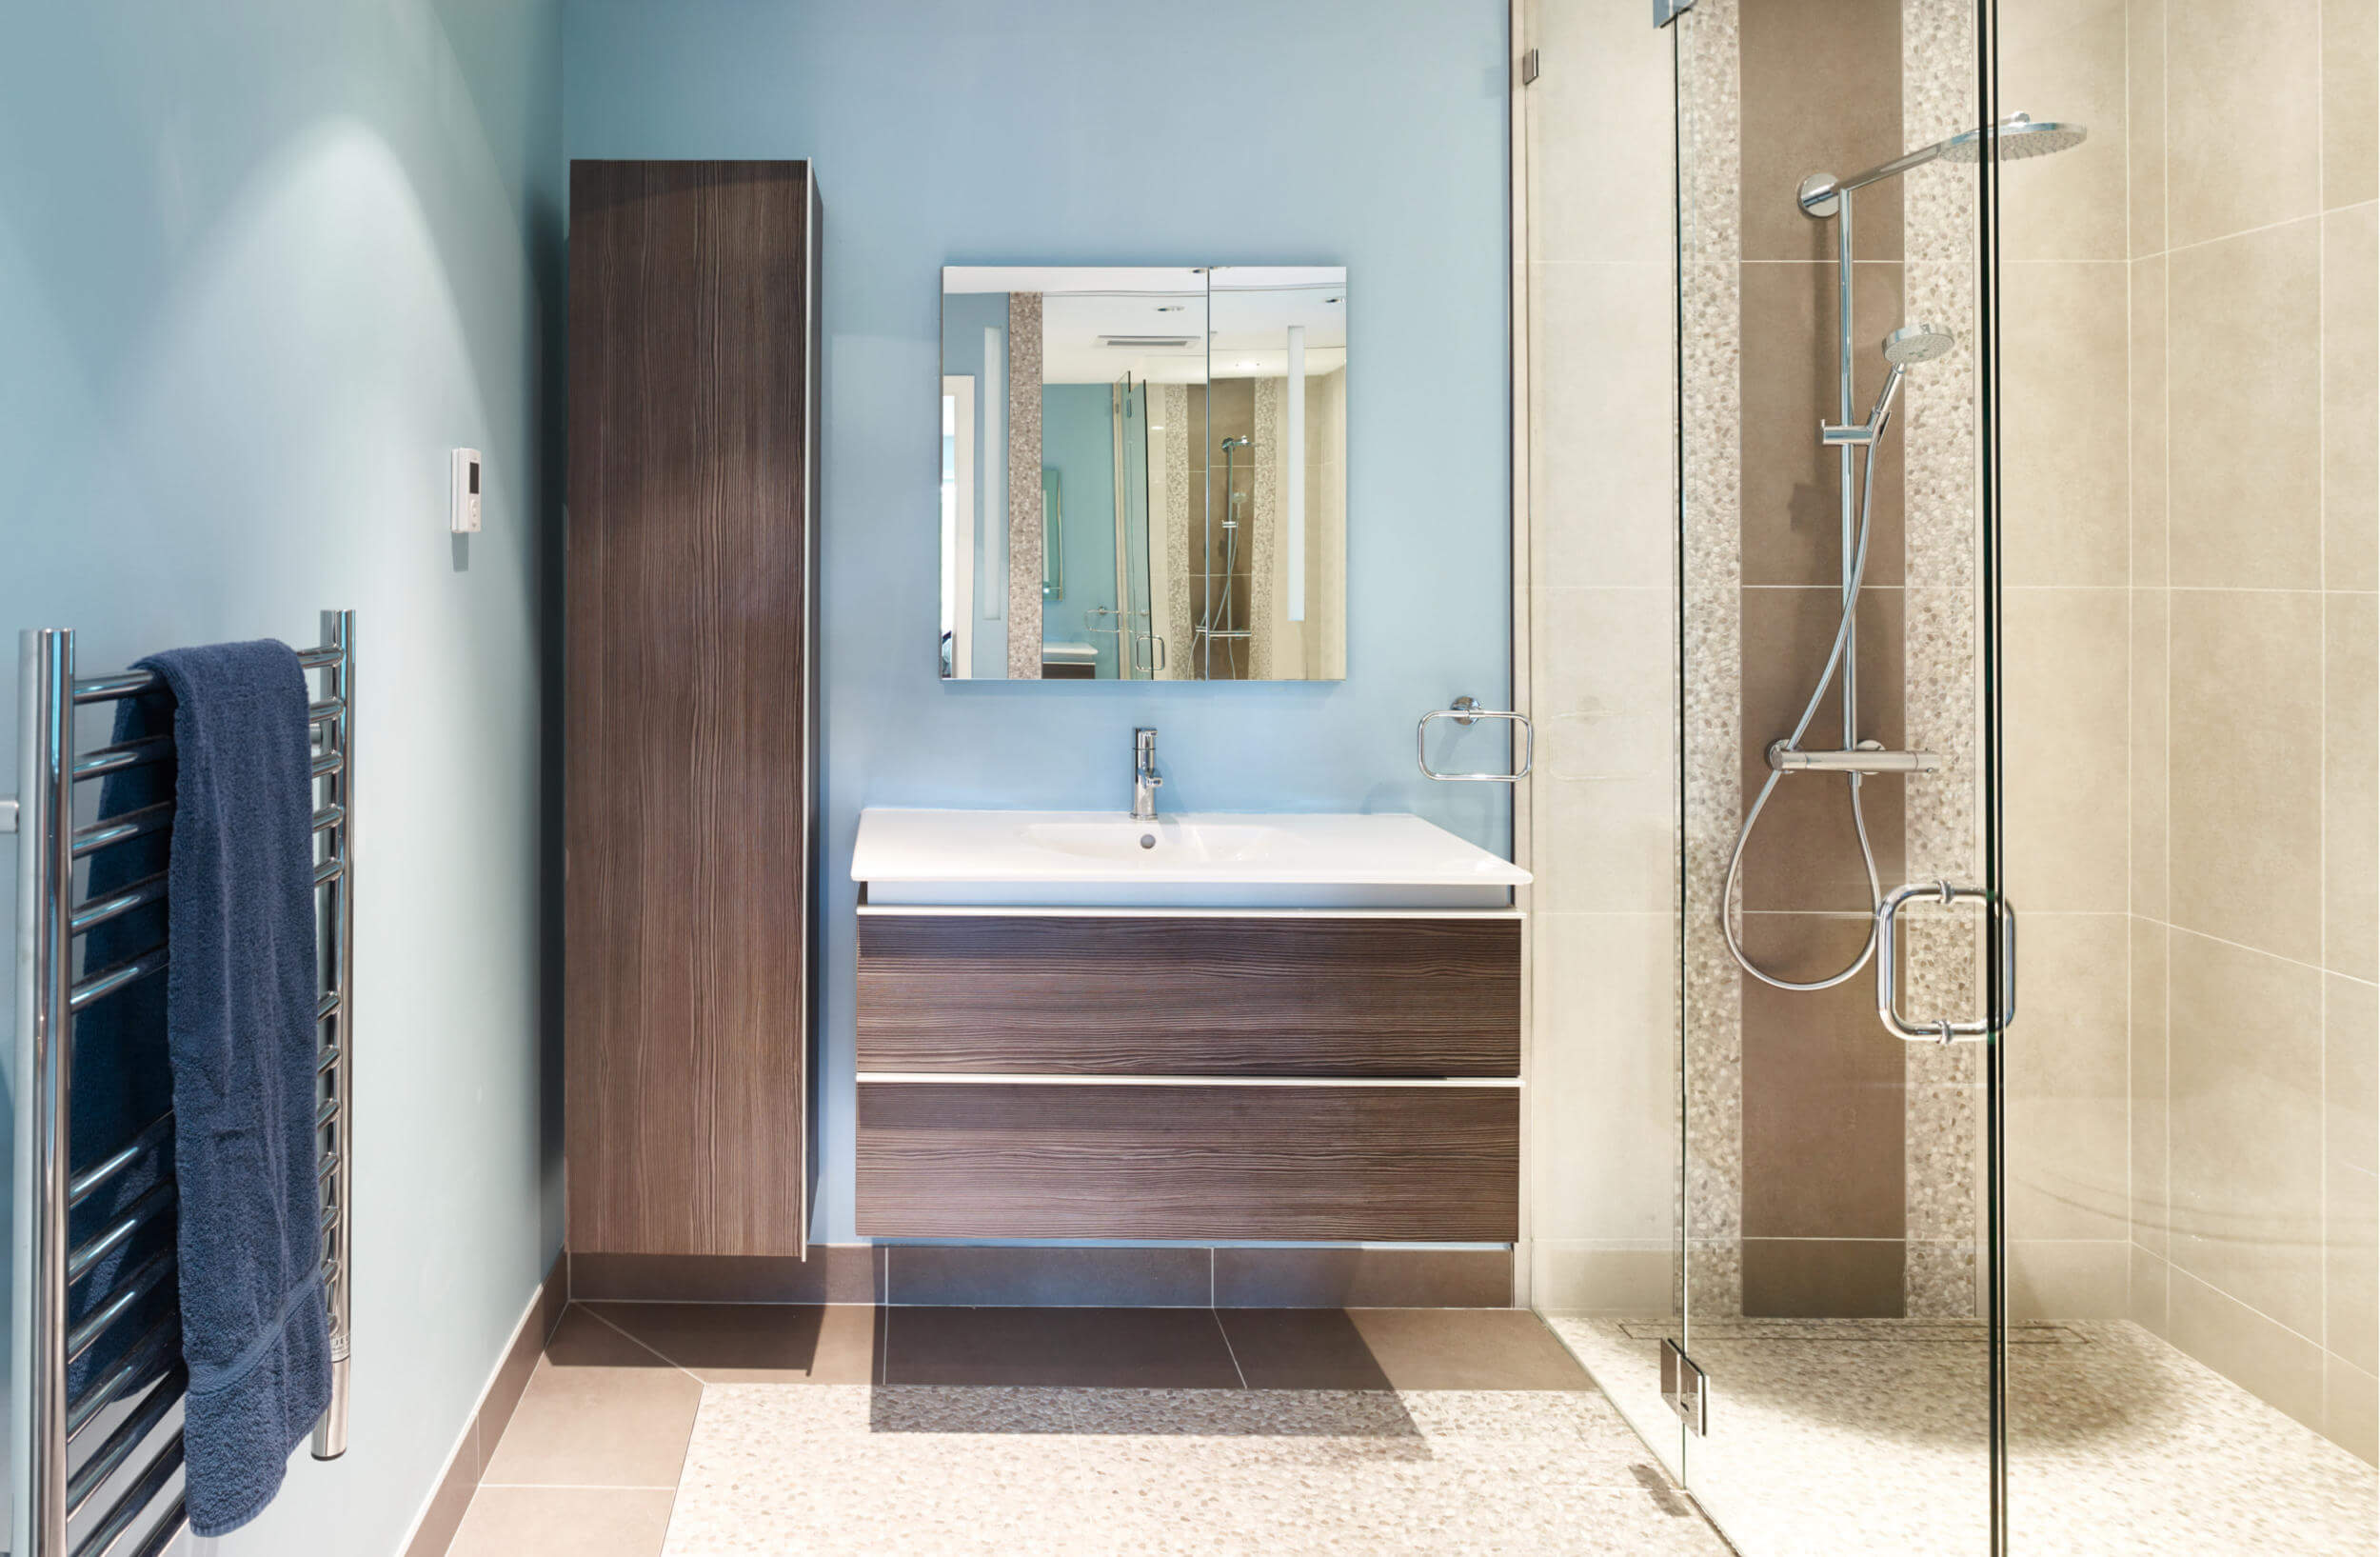 Blaues Badezimmer Blau Badezimmer Bathroom Renovation Revision Custom